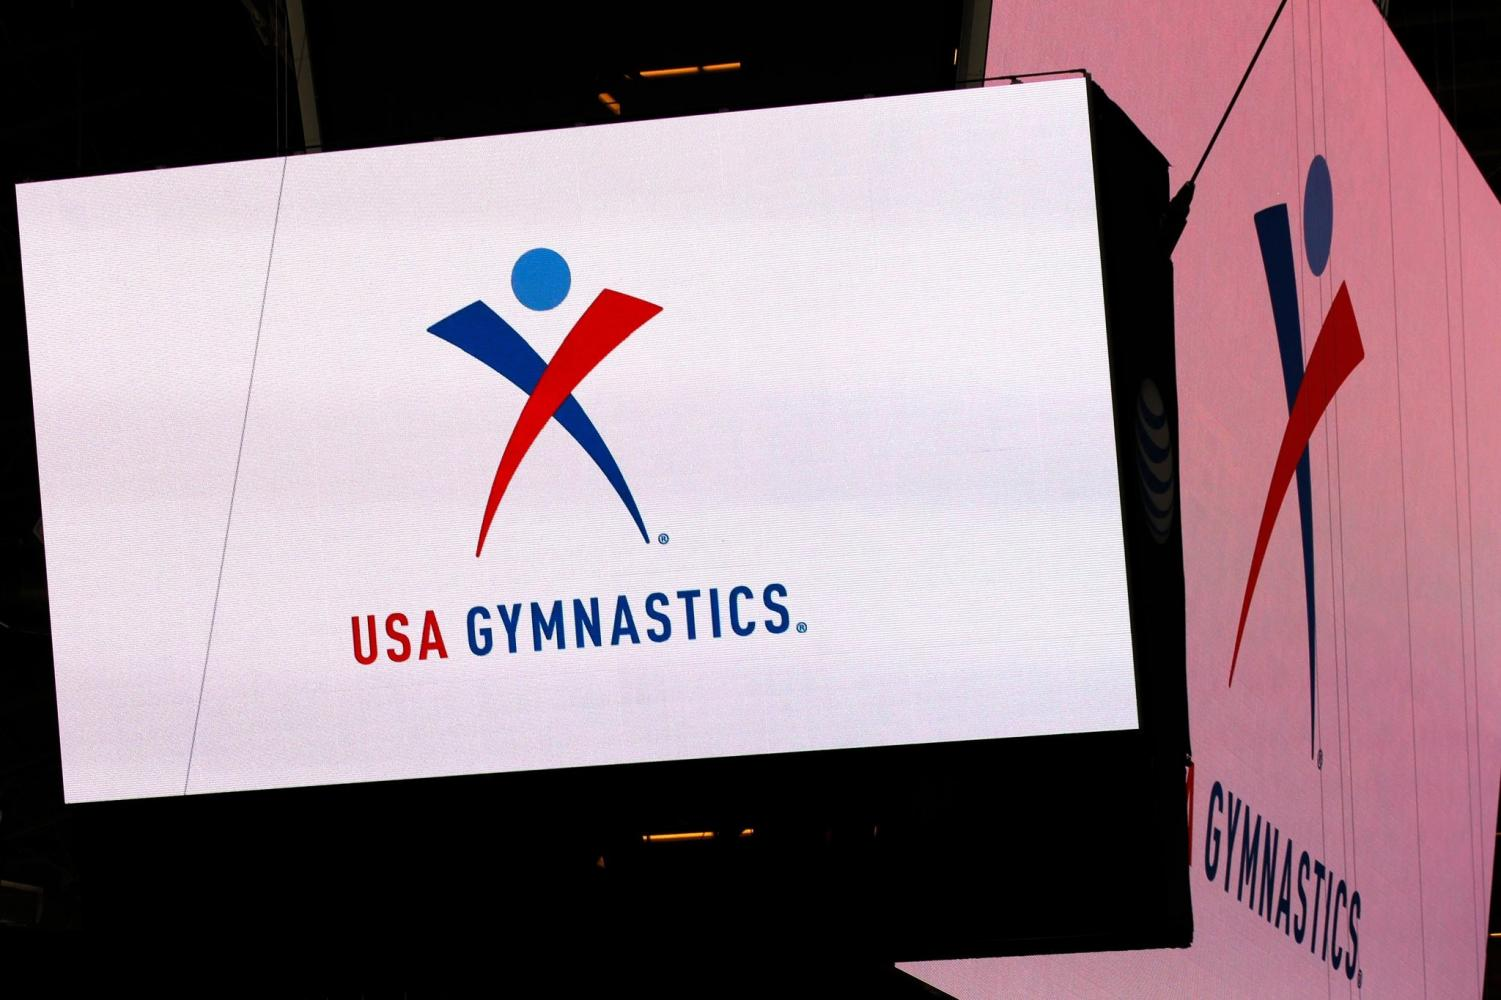 The bankruptcy is not a move towards liquidation of USA Gymnastics, but rather a way of maintaining power. As shown, USAG  continues to sport its logo with pride.